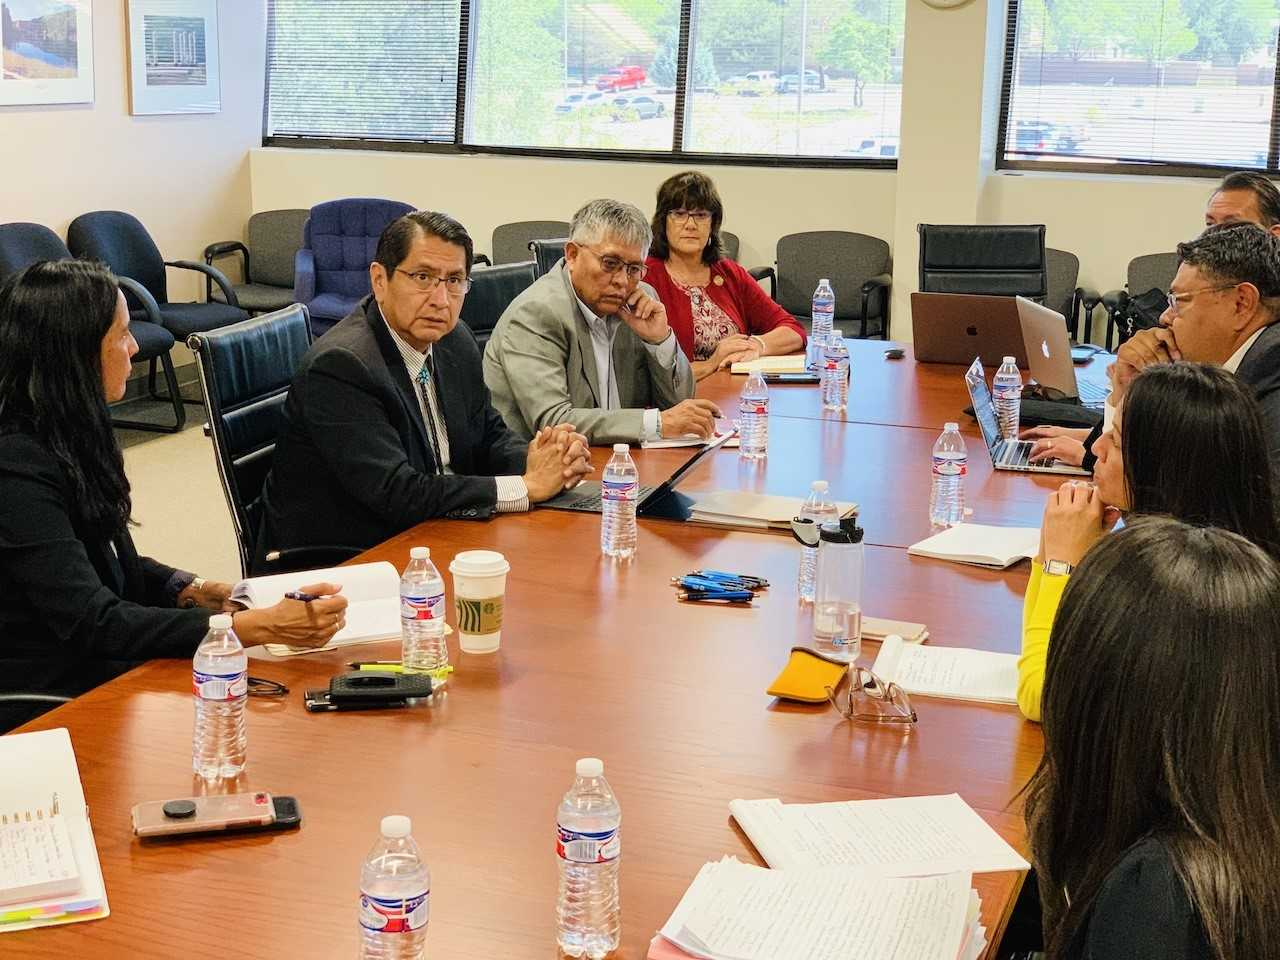 Navajo Nation Leaders Discuss Impact Aid Funds for Native American Students in New Mexico